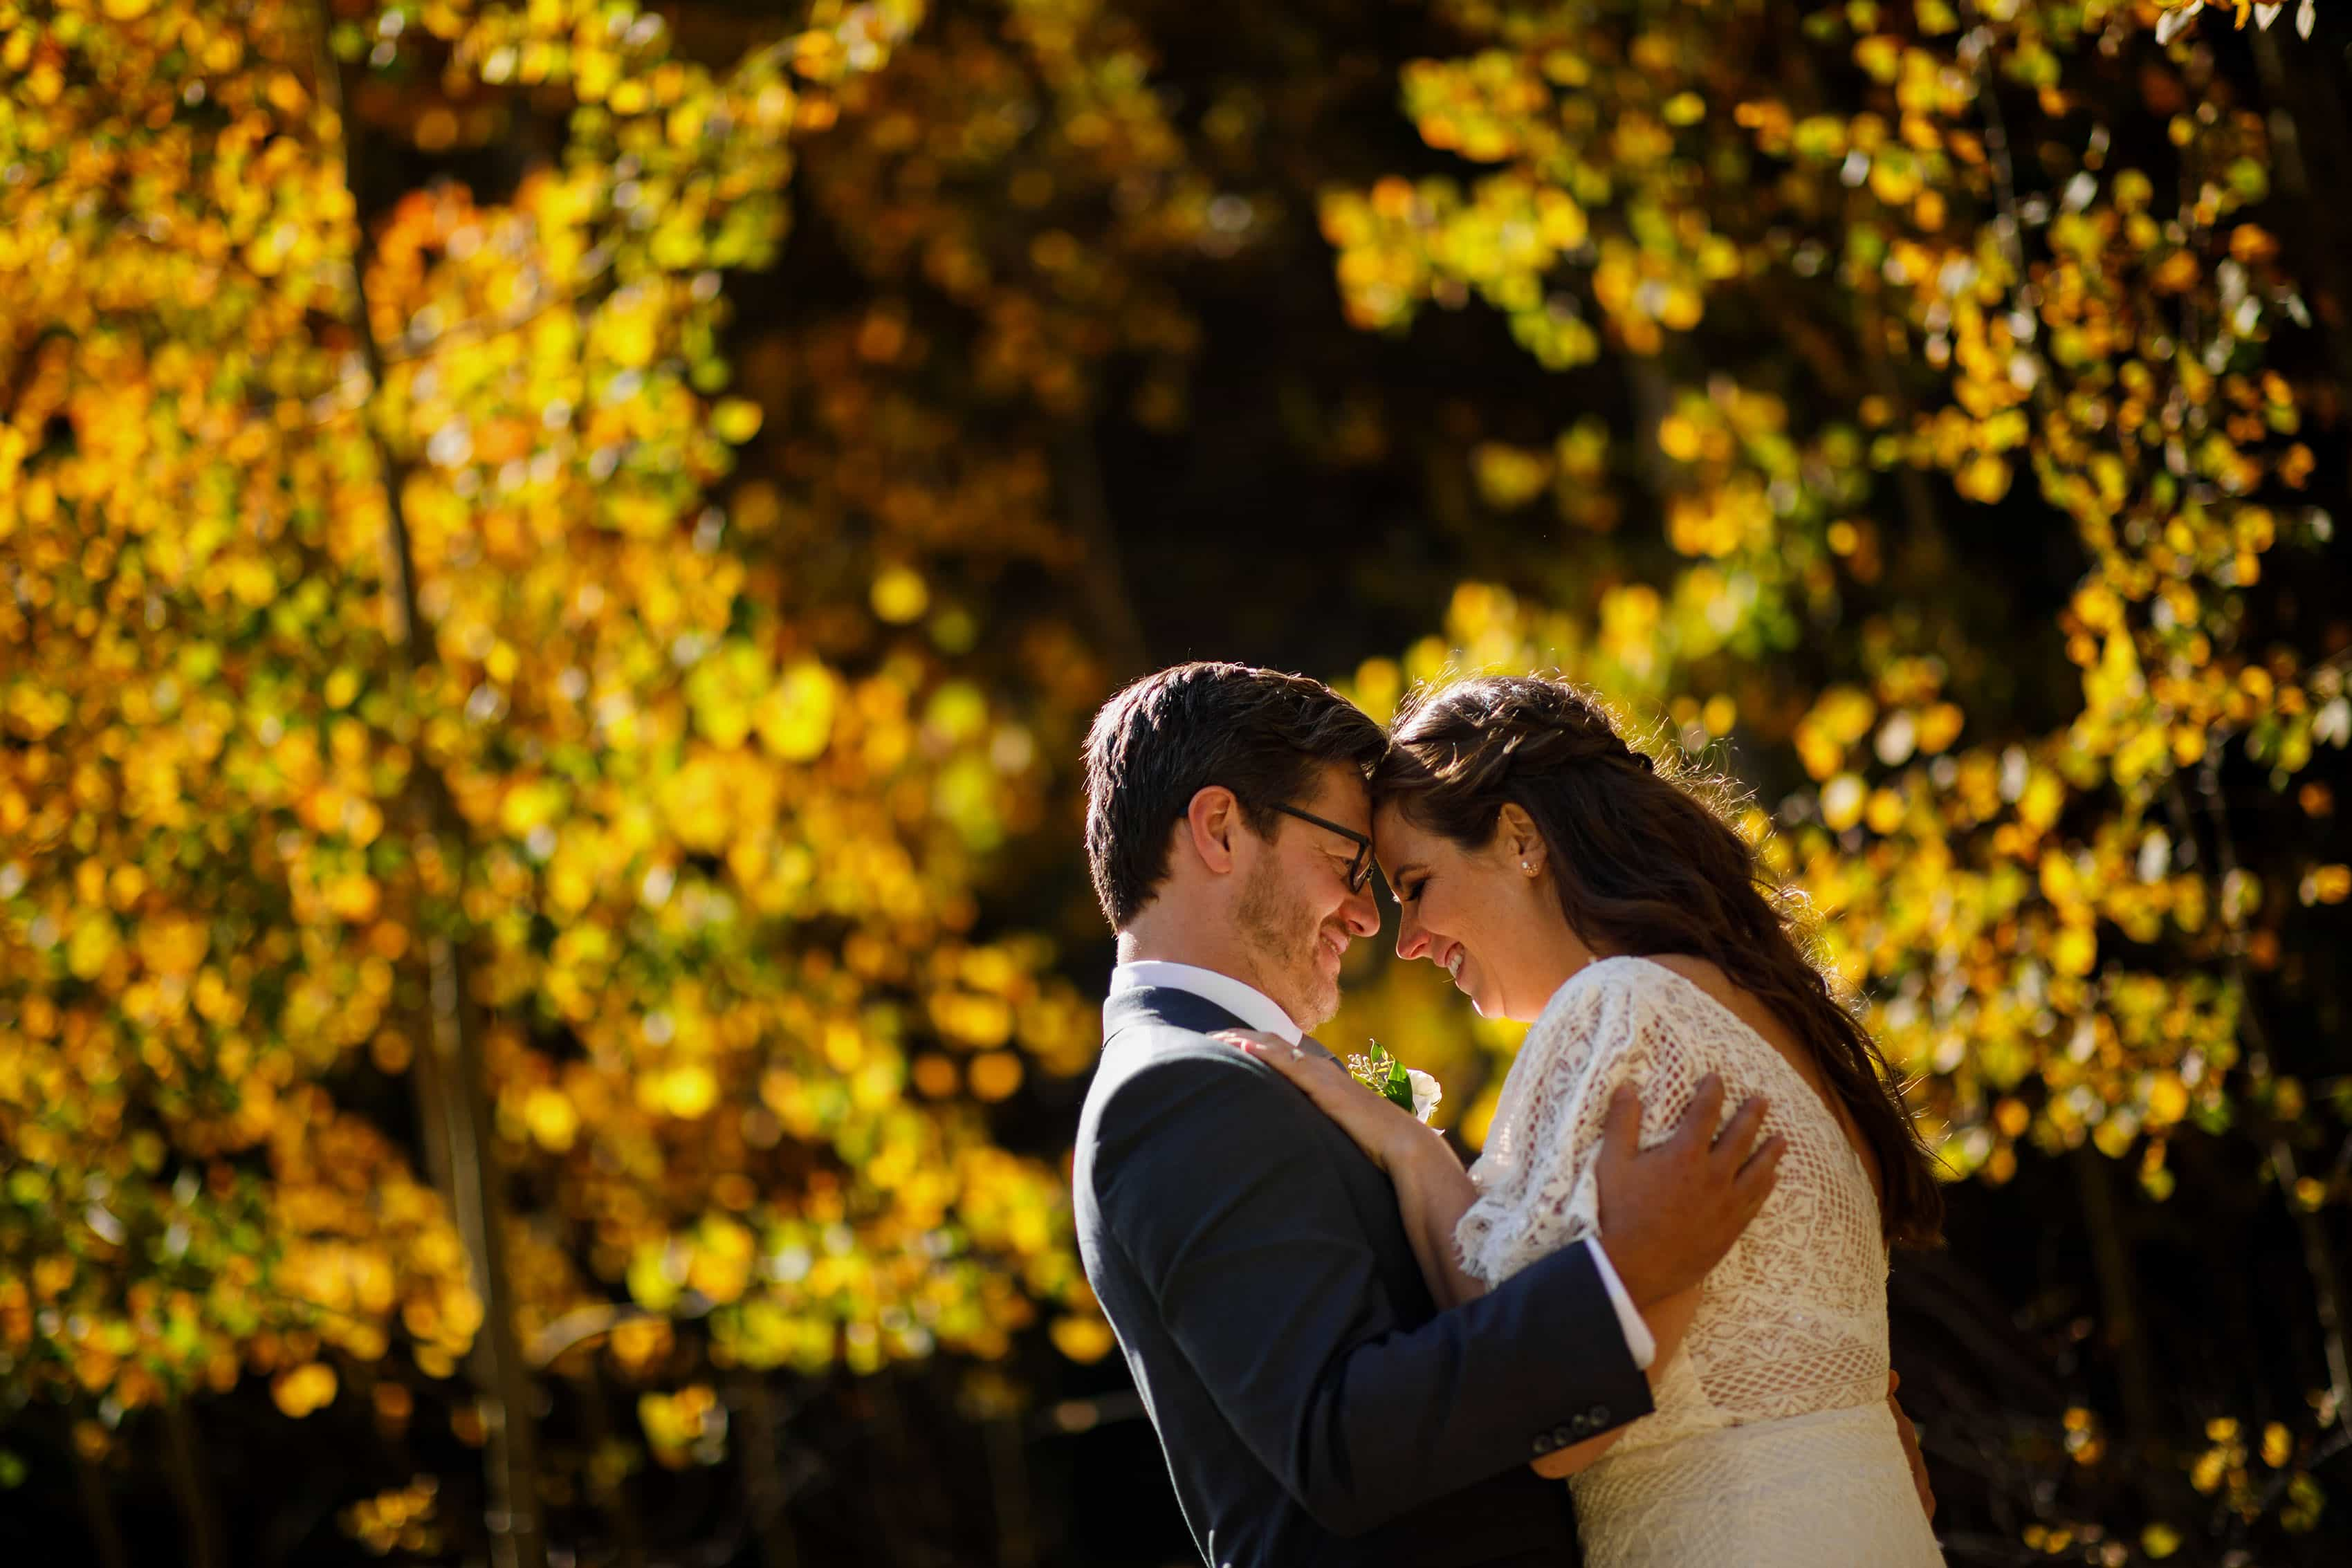 Kate and Brian embrace near a grove of yellow aspen trees after their fall wedding in Idaho Springs at Blackstone Rivers Ranch